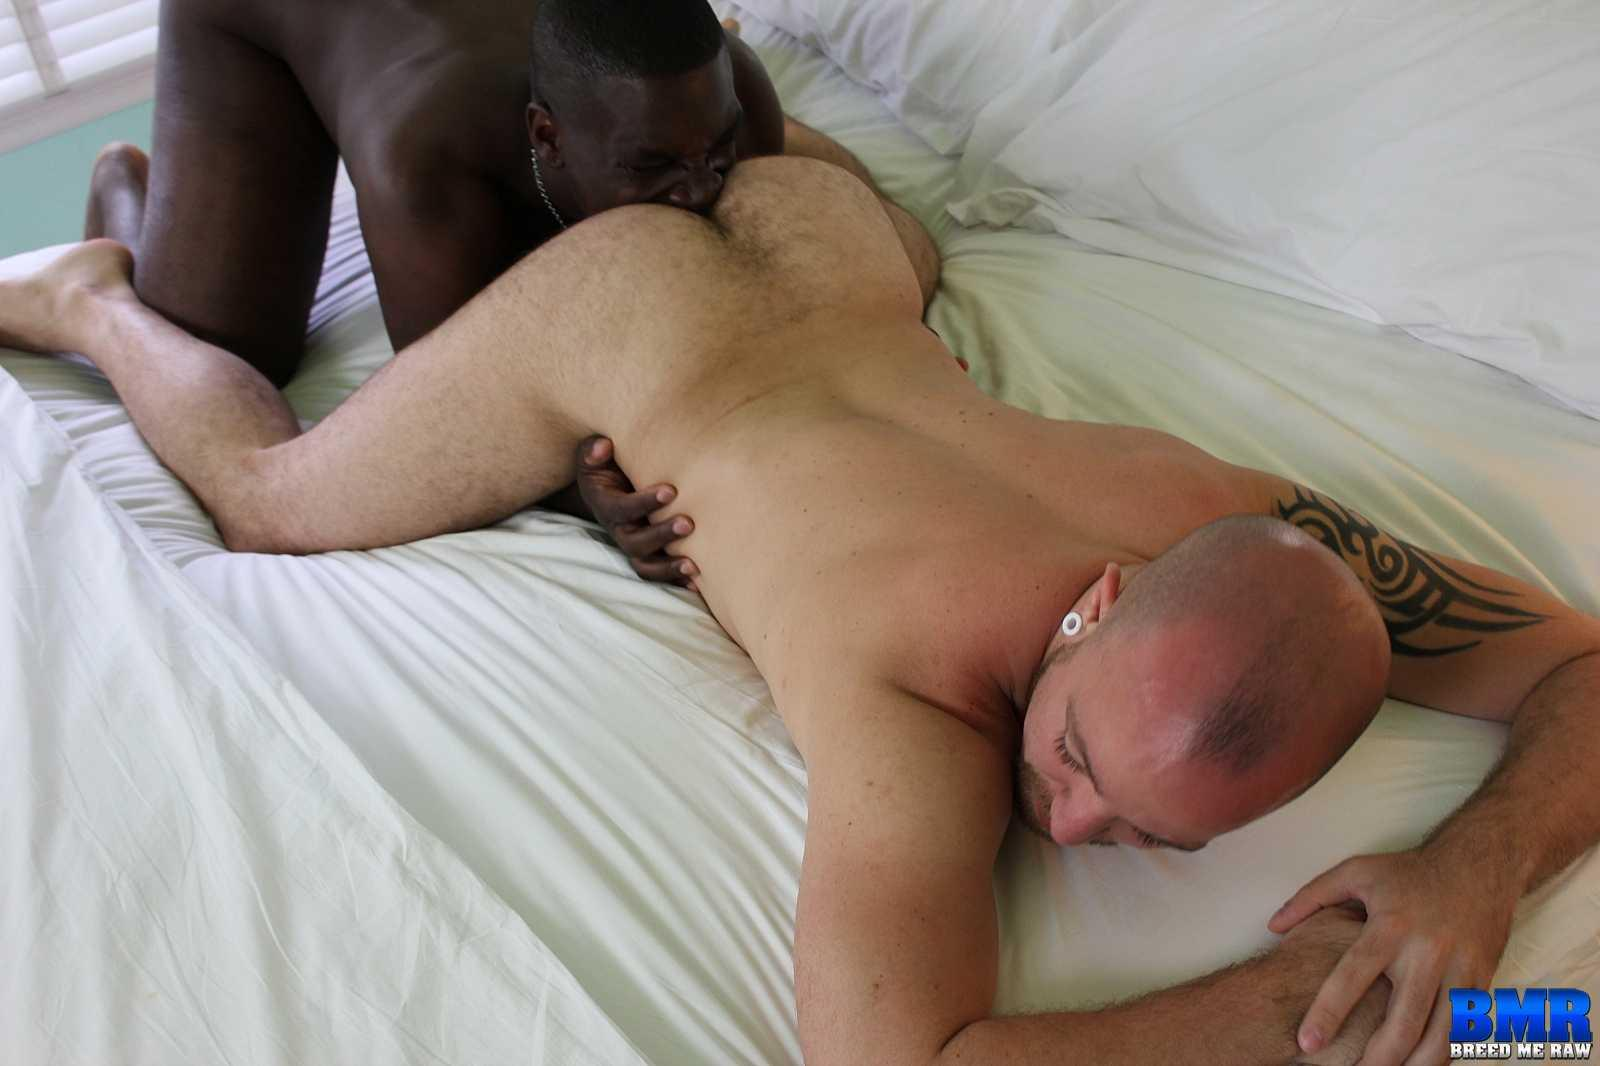 Breed Me Raw Daemon Sadi and Lex Antoine Interracial Bareback Fucking Big Black Cock Amateur Gay Porn 06 Amateur Interracial Bareback Flip Flop Fucking With Huge Uncut Cocks